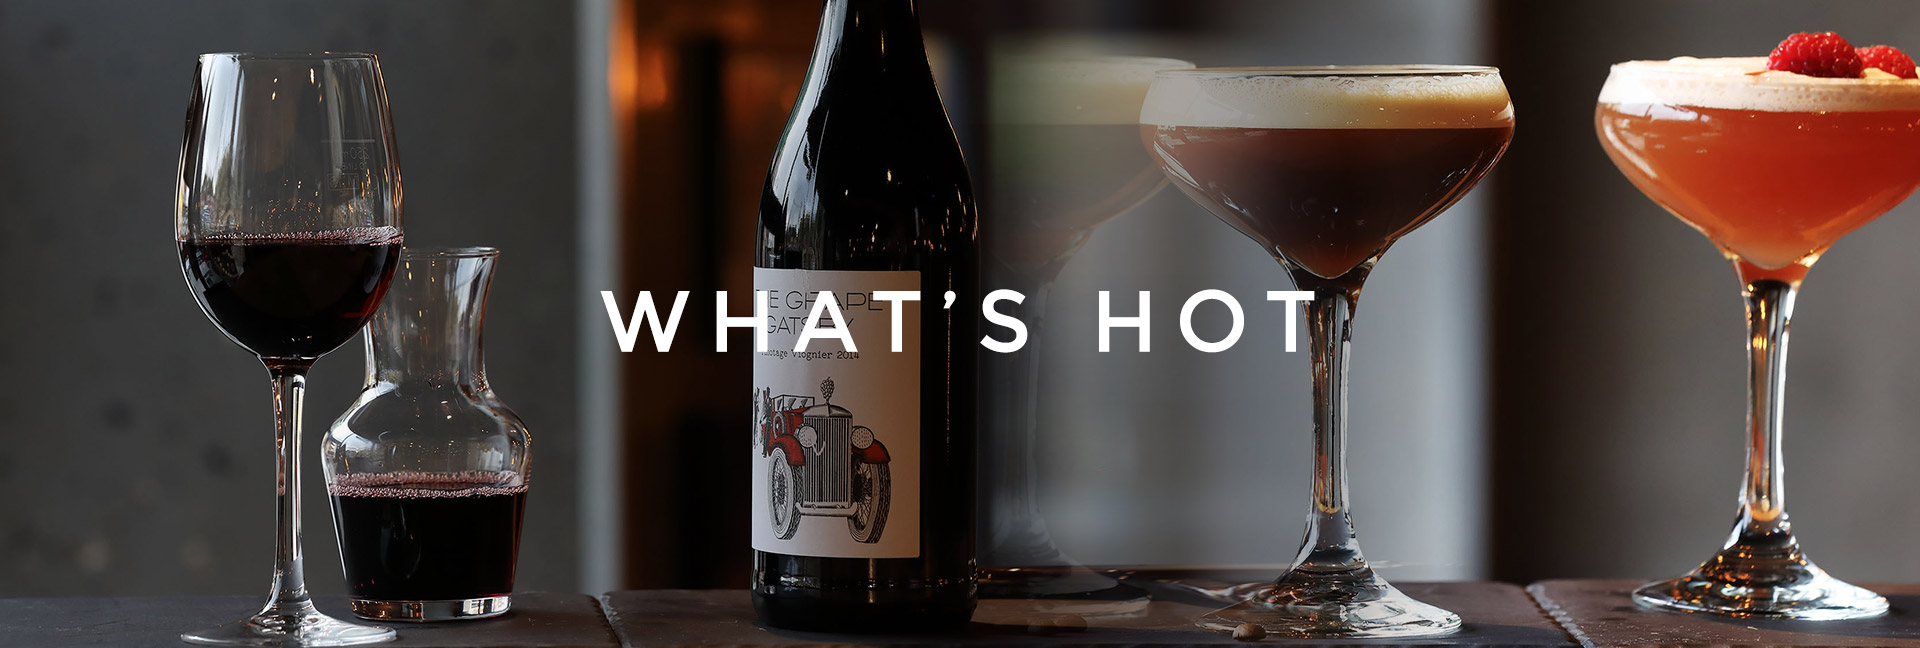 What's Hot at All Bar One Nottingham